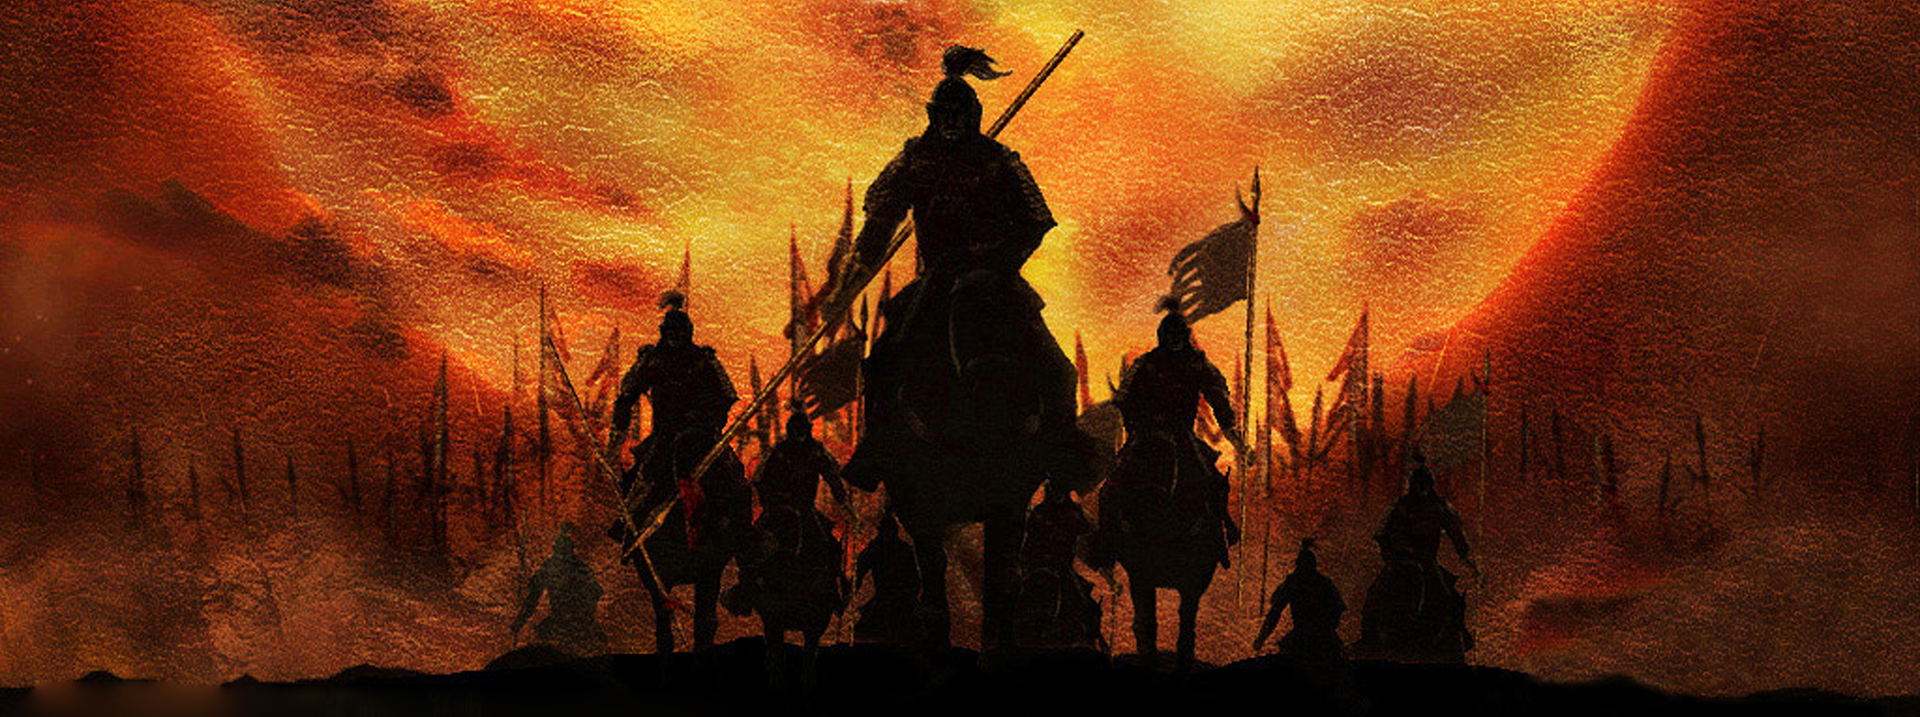 ancient war scenes background  horses  knight  ruins background image for free download